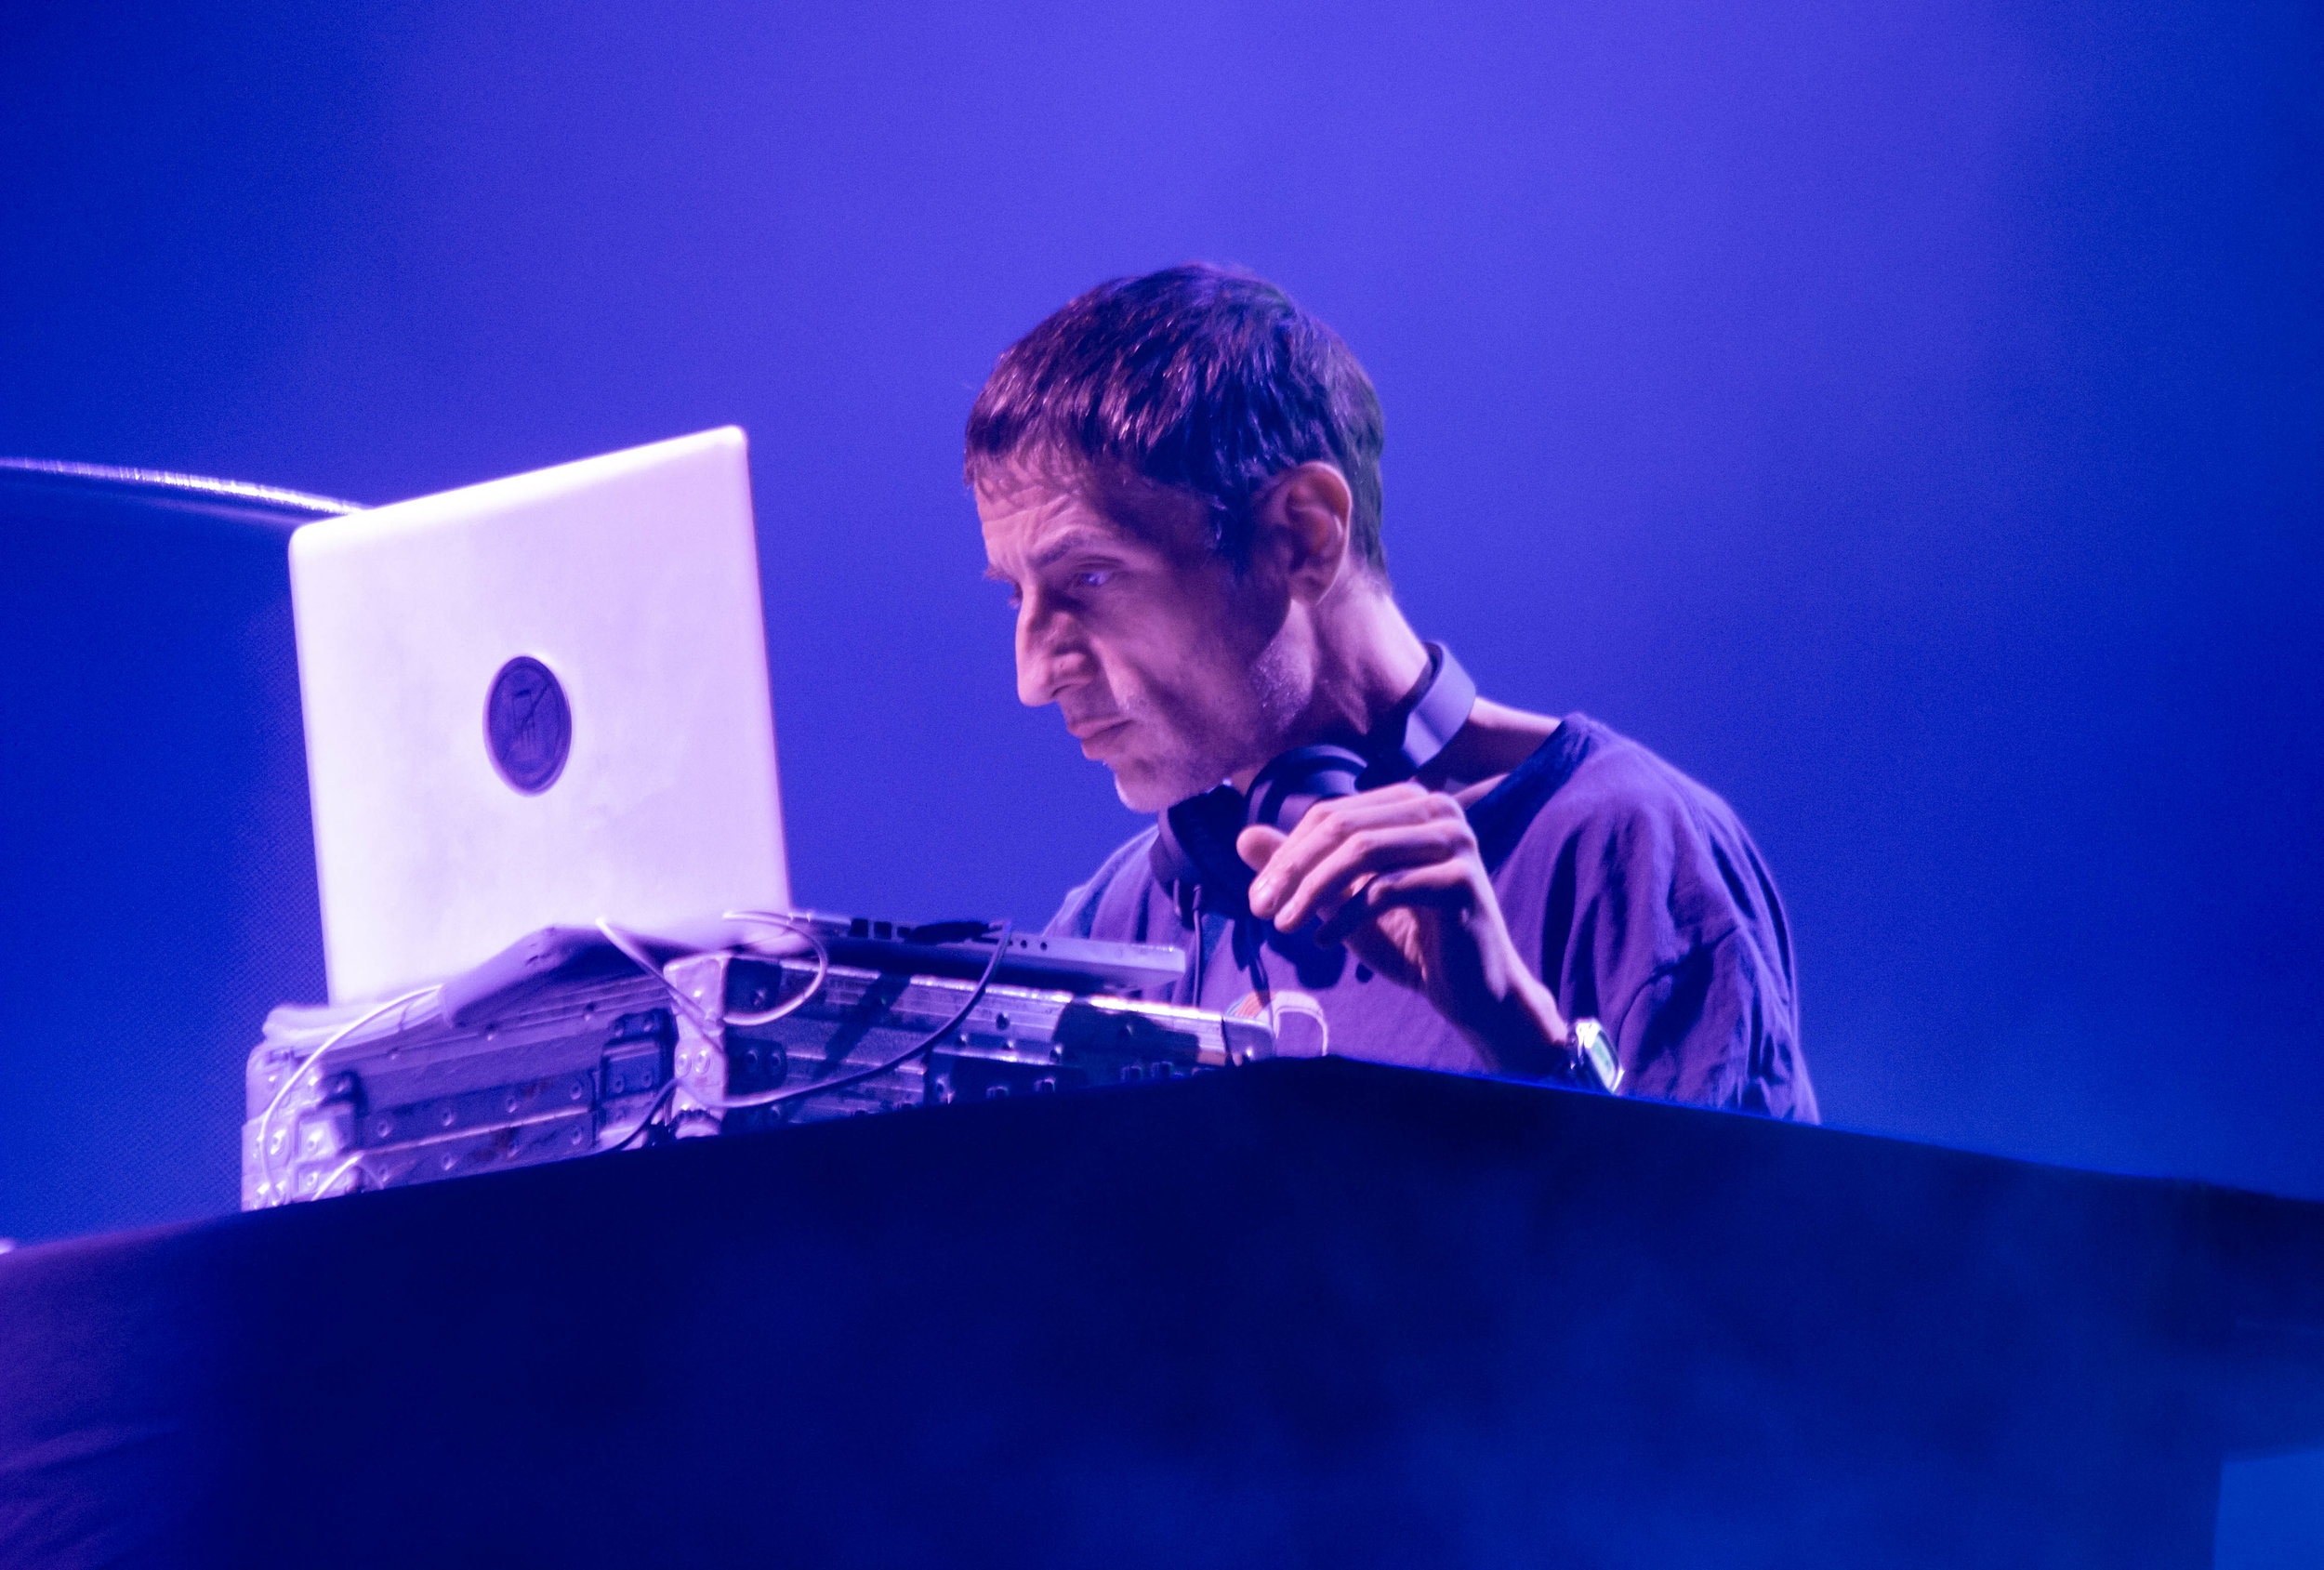 LUKE VIBERT (UK PRODUCER, DJ)